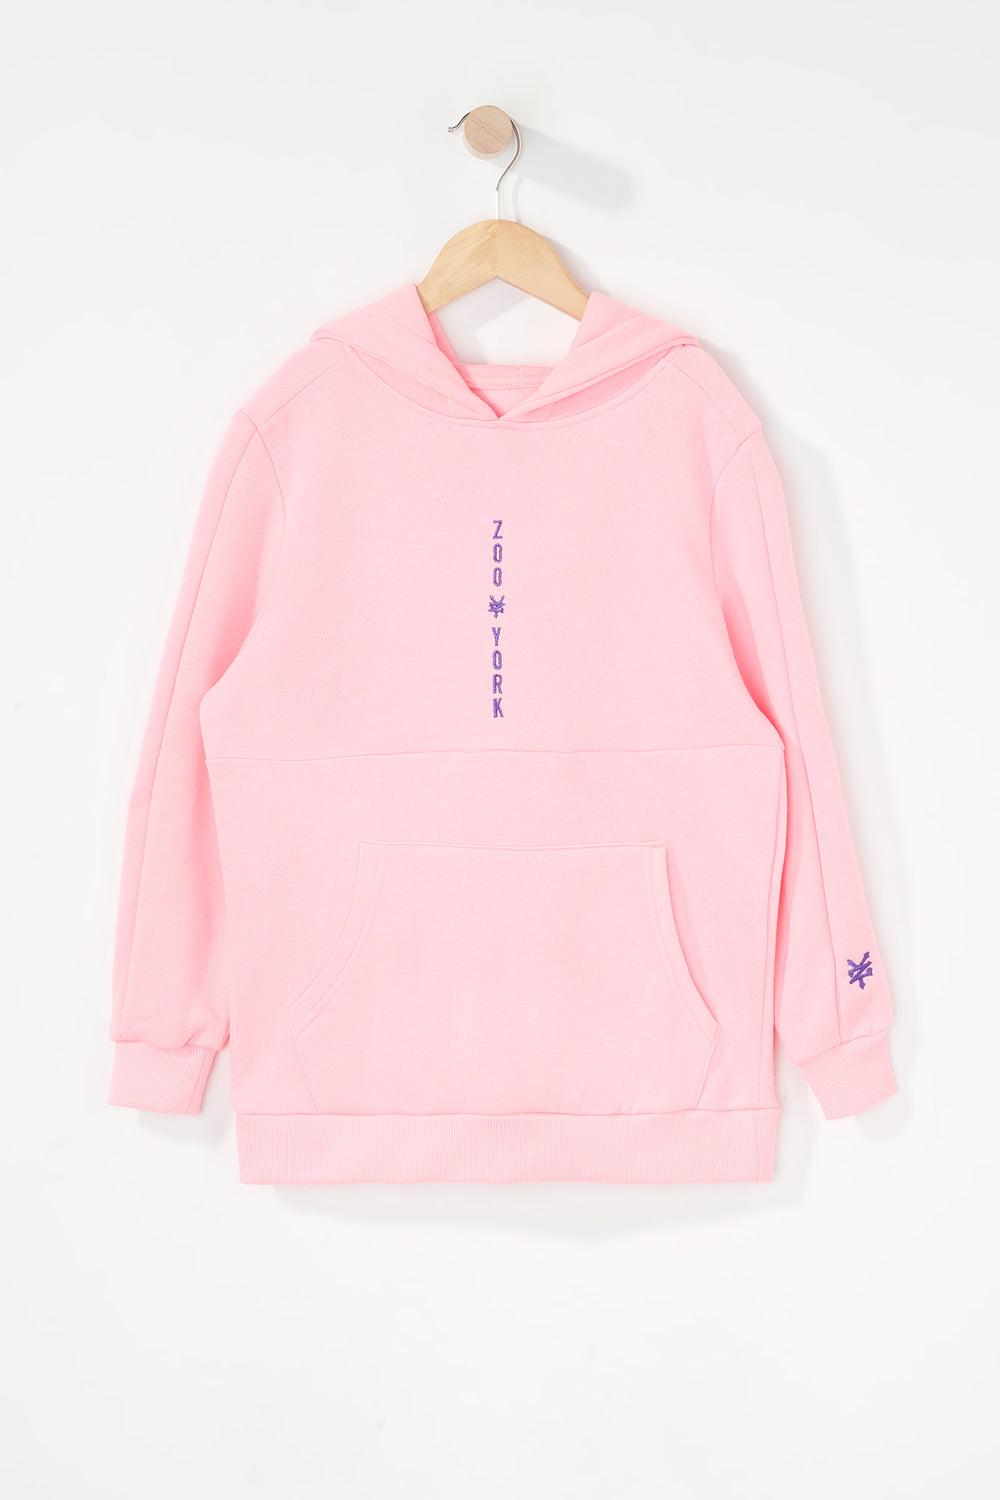 Zoo York Boys Embroidered Logo Hoodie Neon Pink